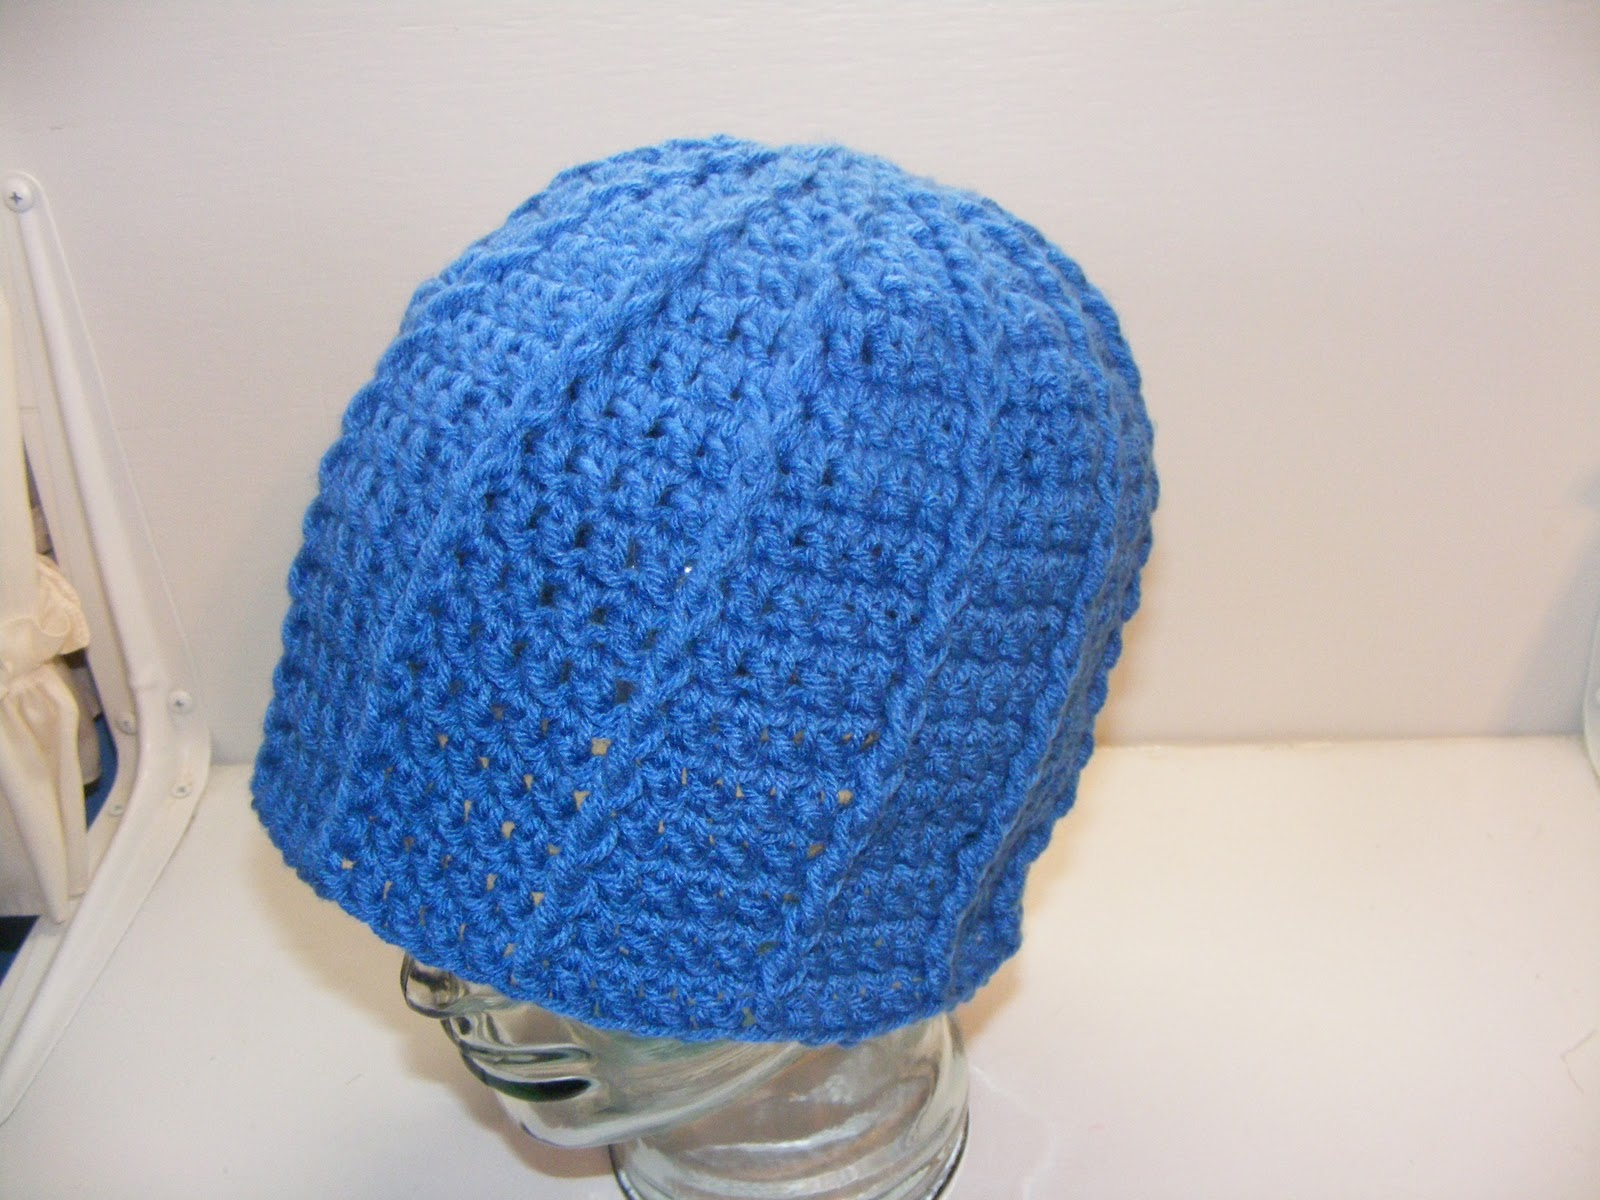 Crochet Basic Beanie Hat Pattern : CROCHET BASIC HAT PATTERN Crochet Patterns